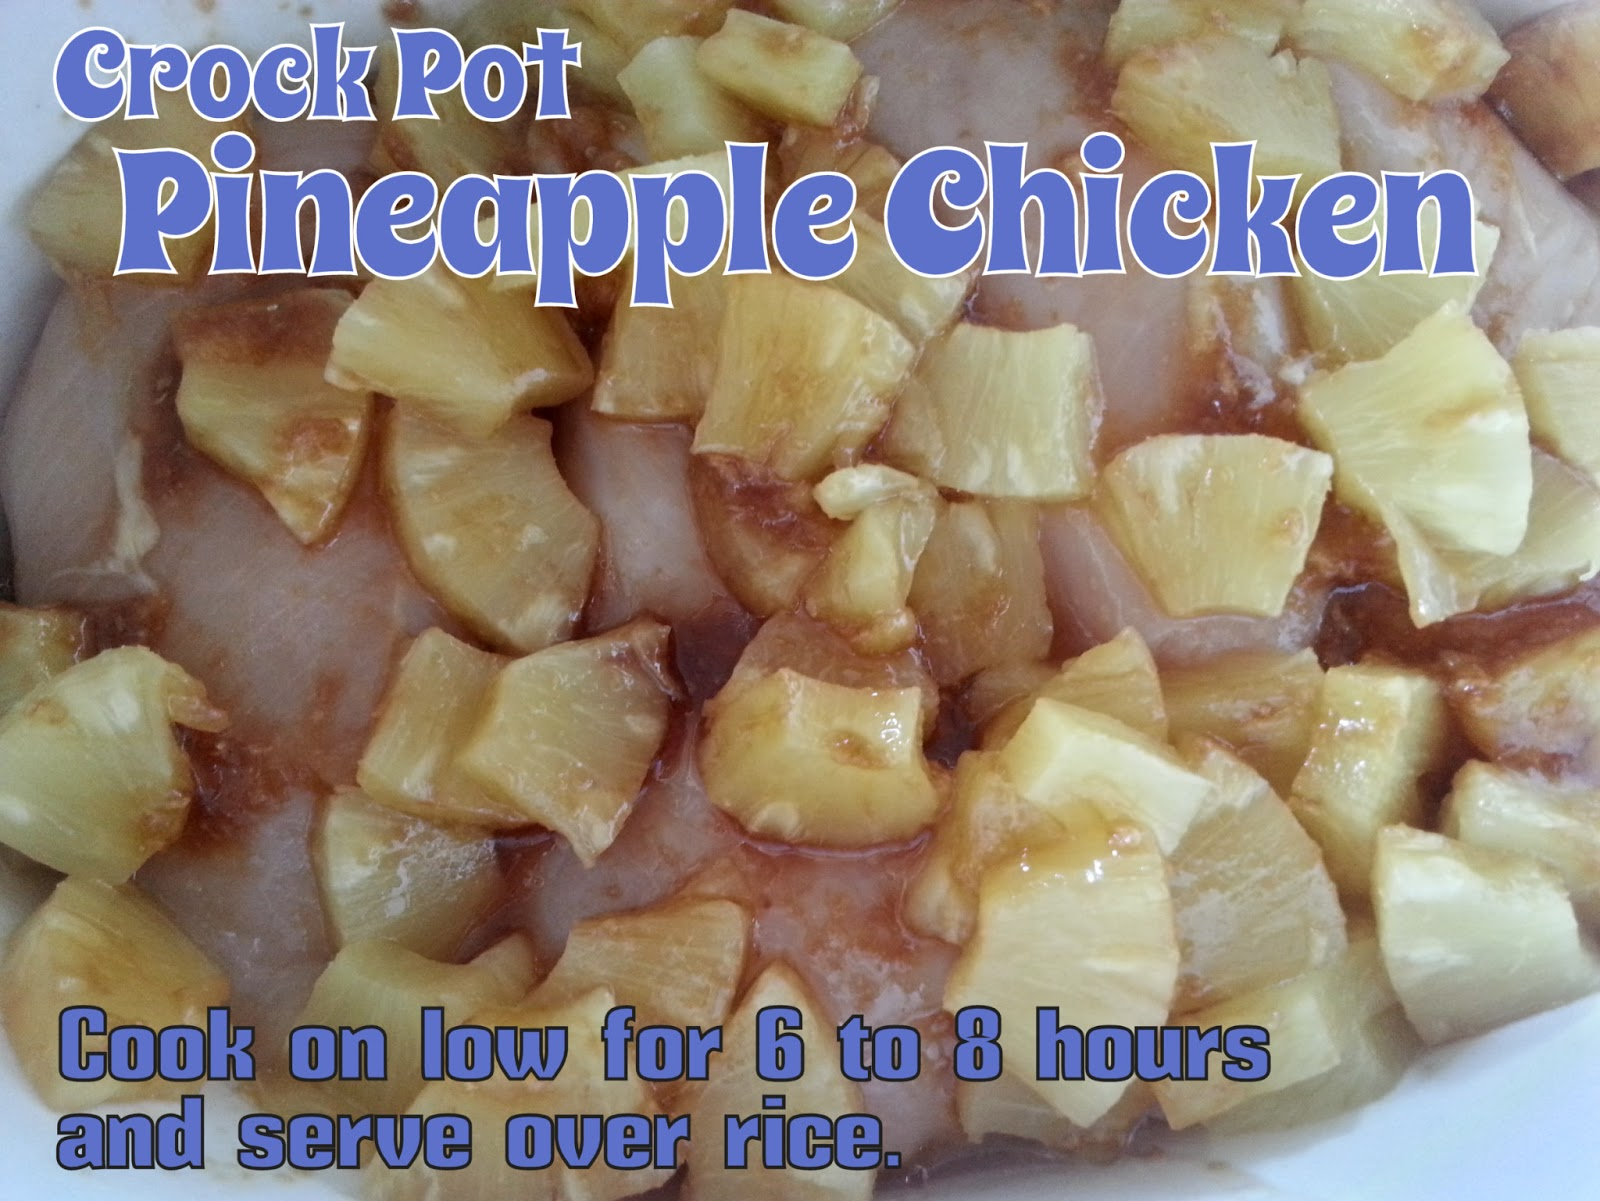 ... of O's and A's with Blood Type and Diet: Crock Pot Pineapple Chicken